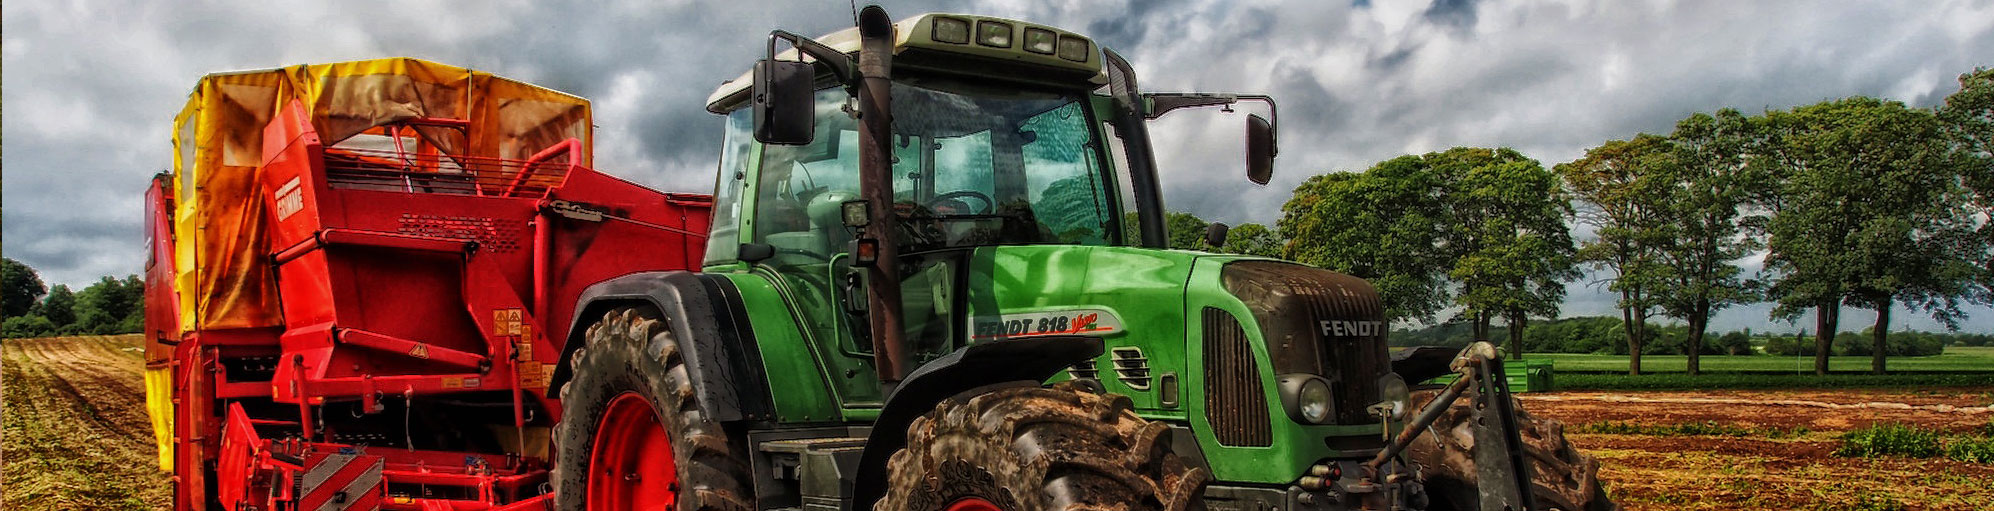 Do you need agricultural finance?